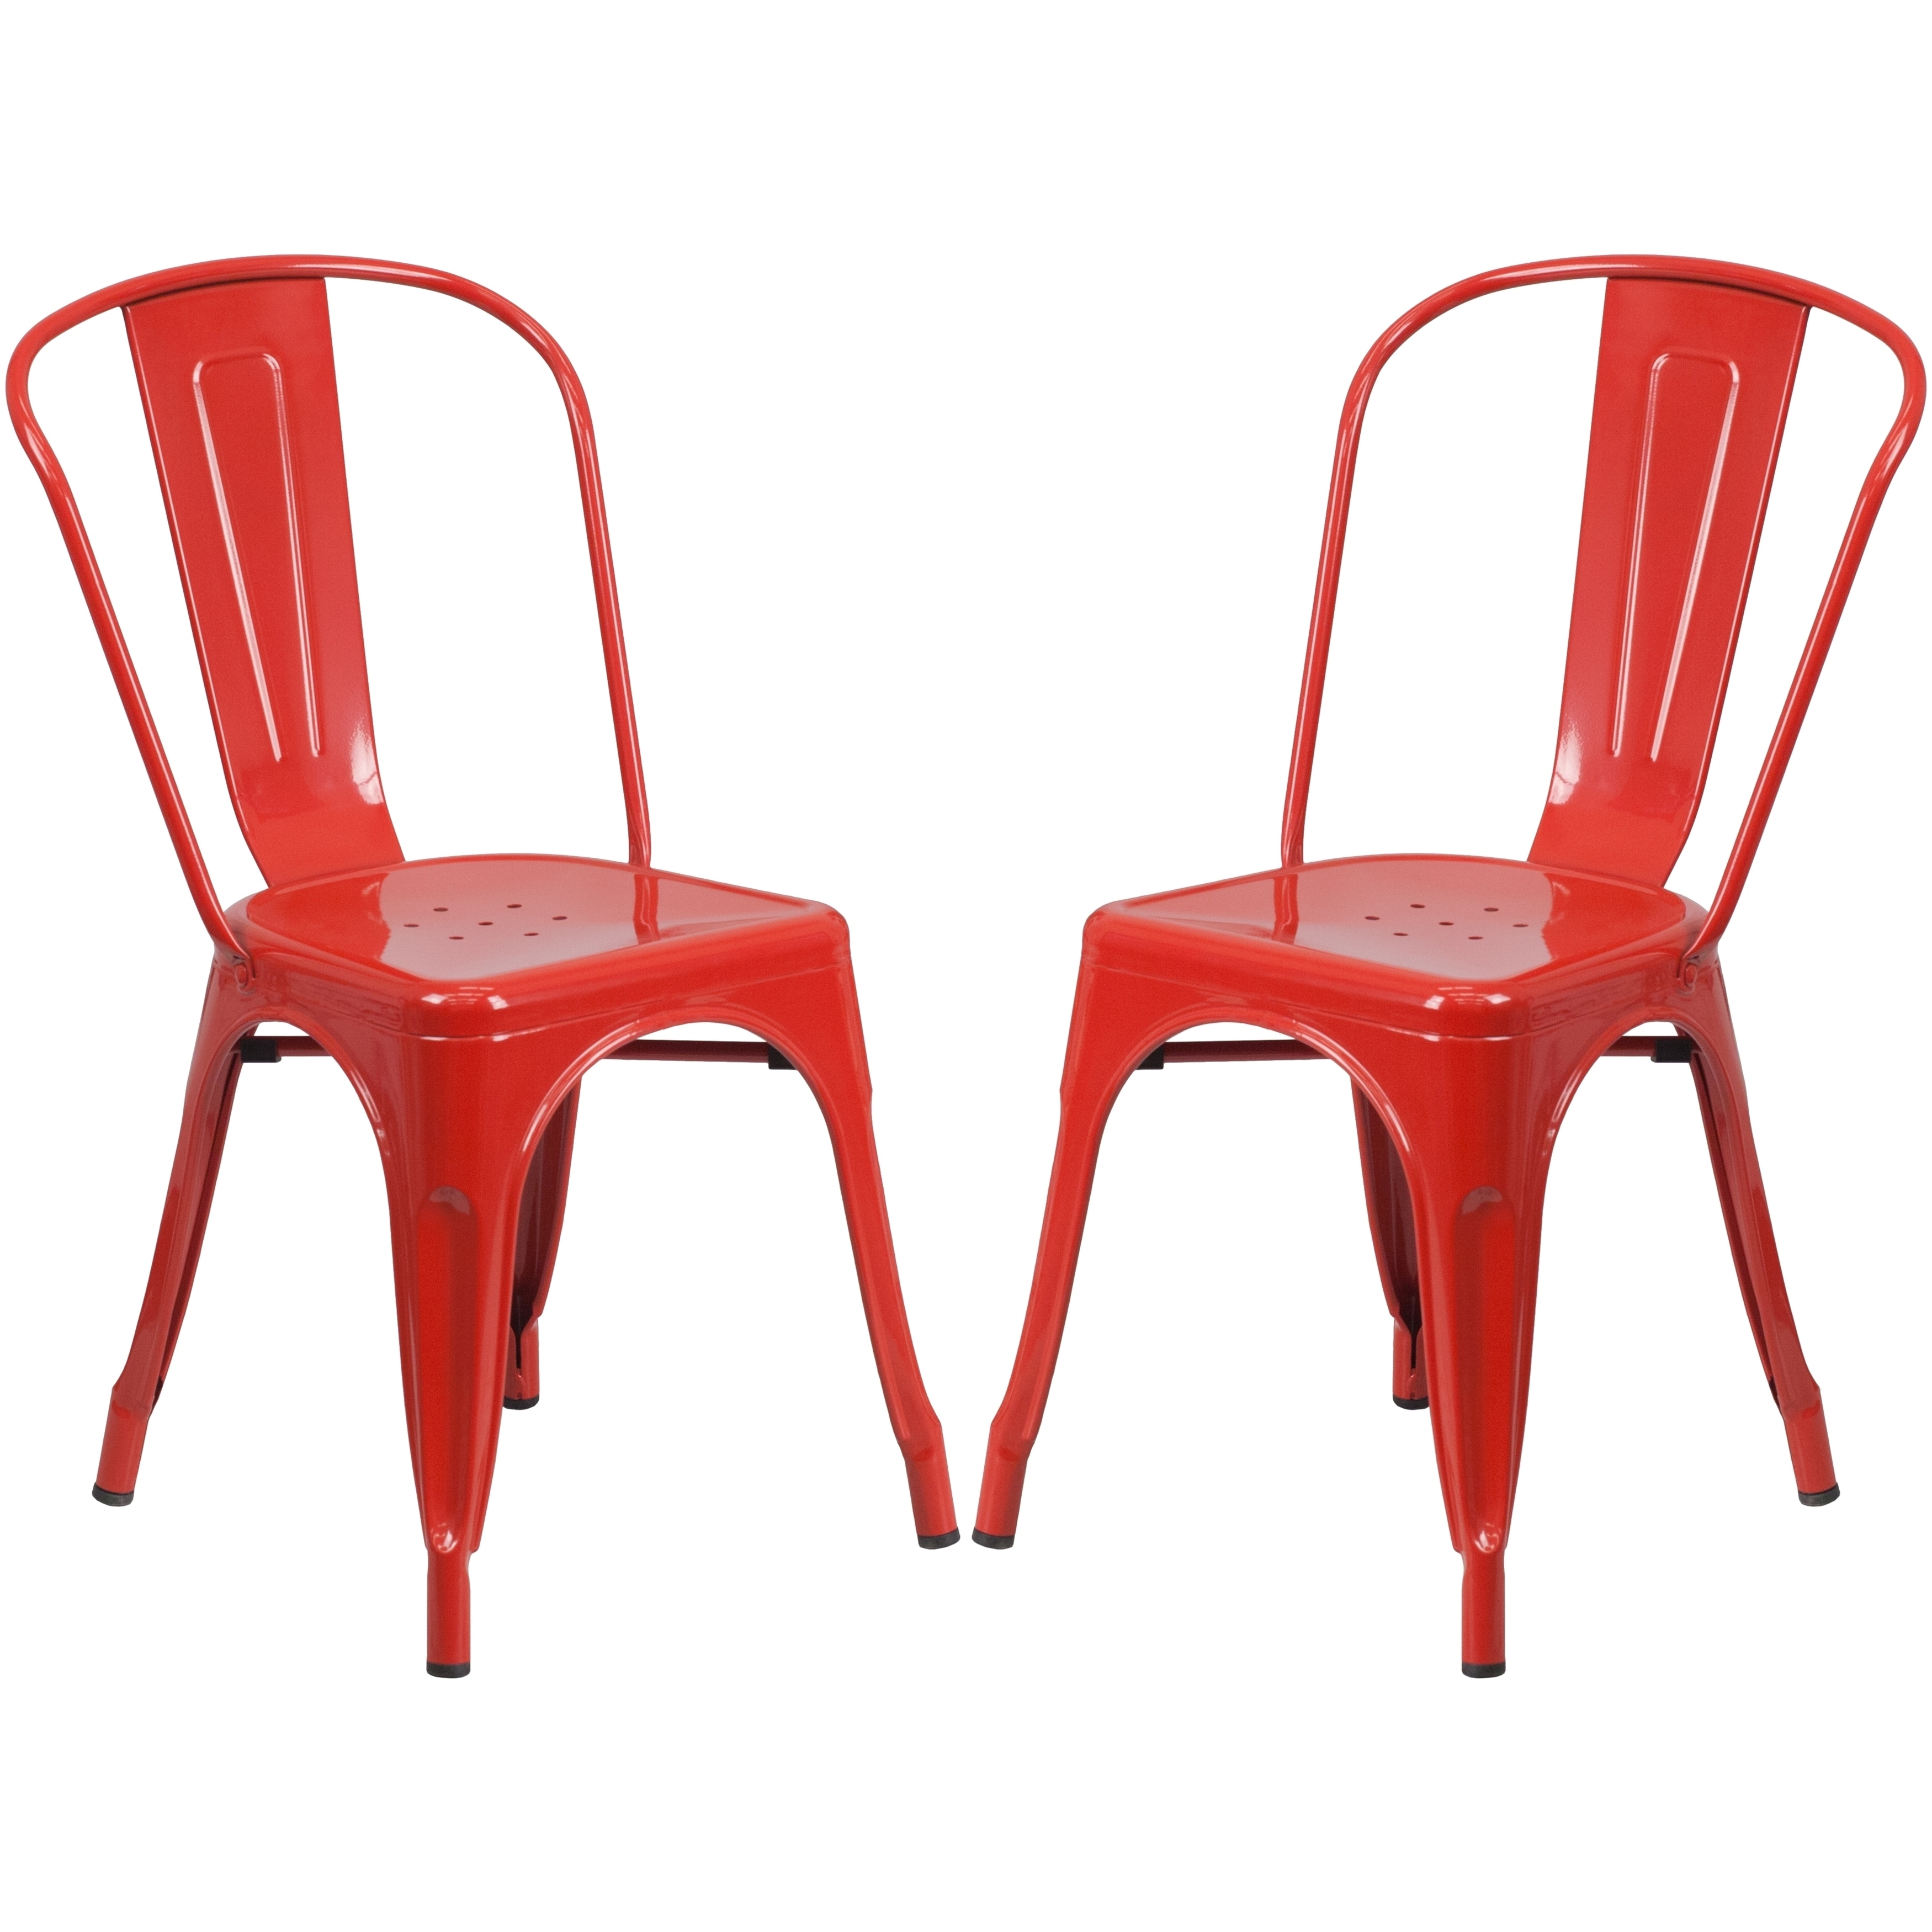 A Line Furniture Red Bistro Style Metal Chair